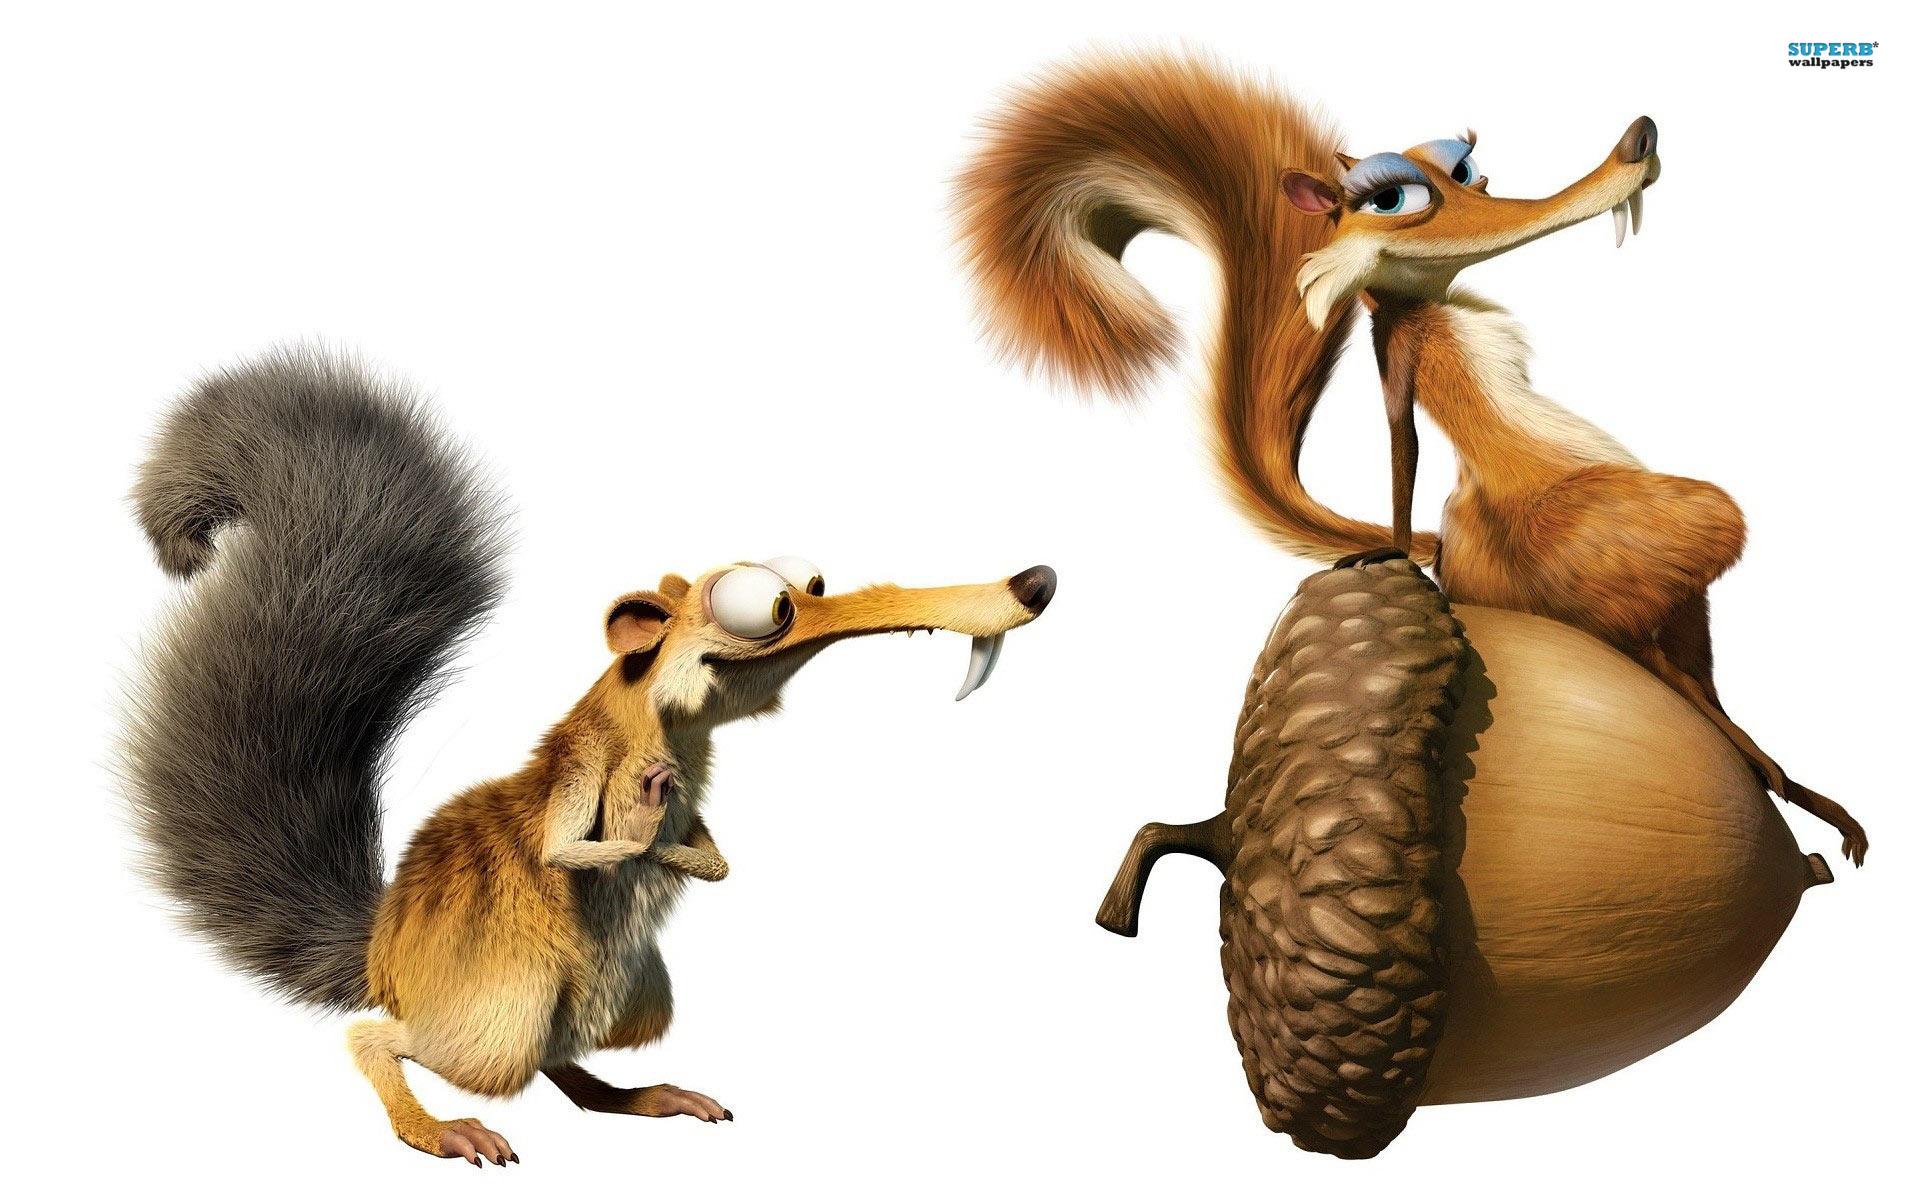 Ice Age: Dawn of the Dinosaurs wallpaper 1920x1200 jpg